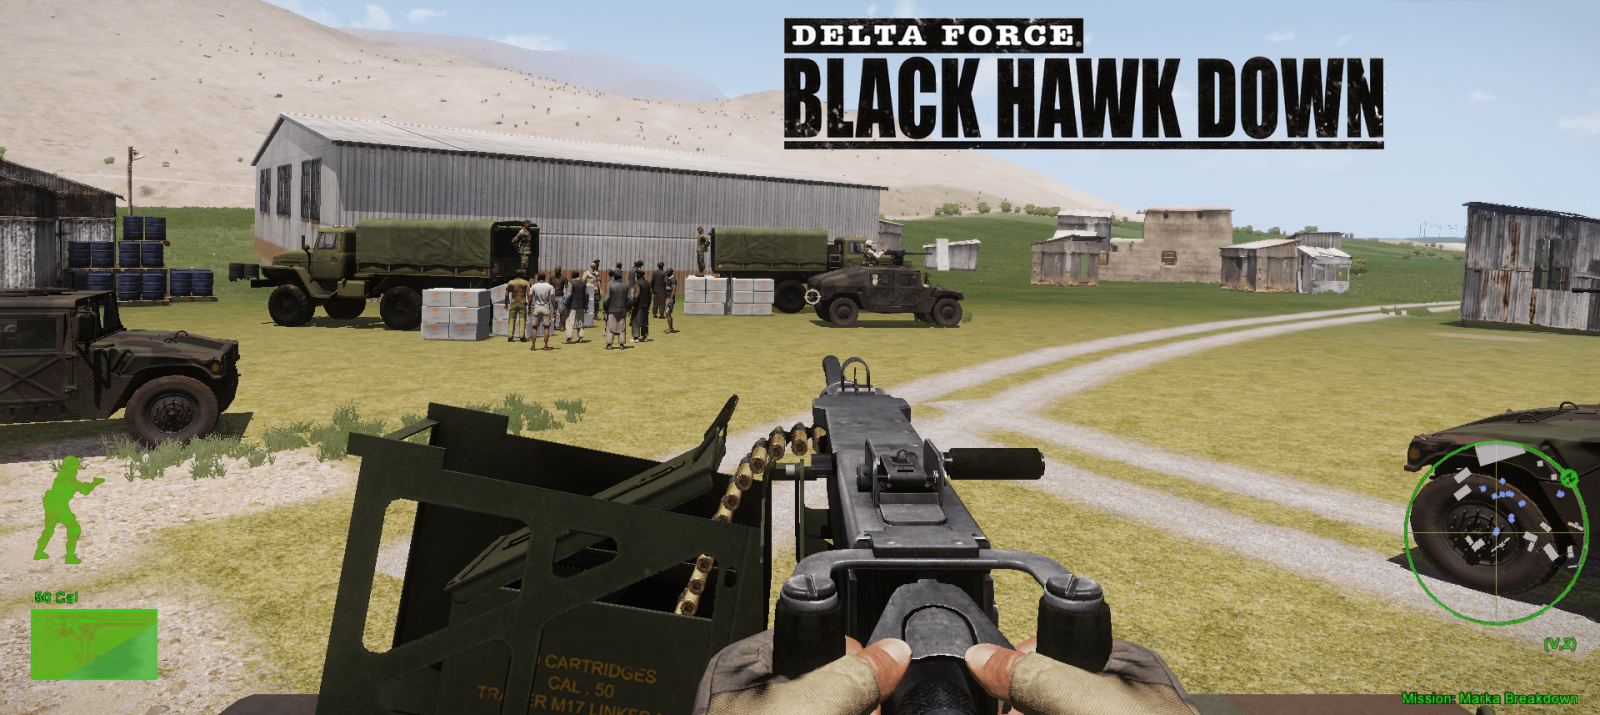 Delta Force Black Hawk Down - Marka Breakdown A3